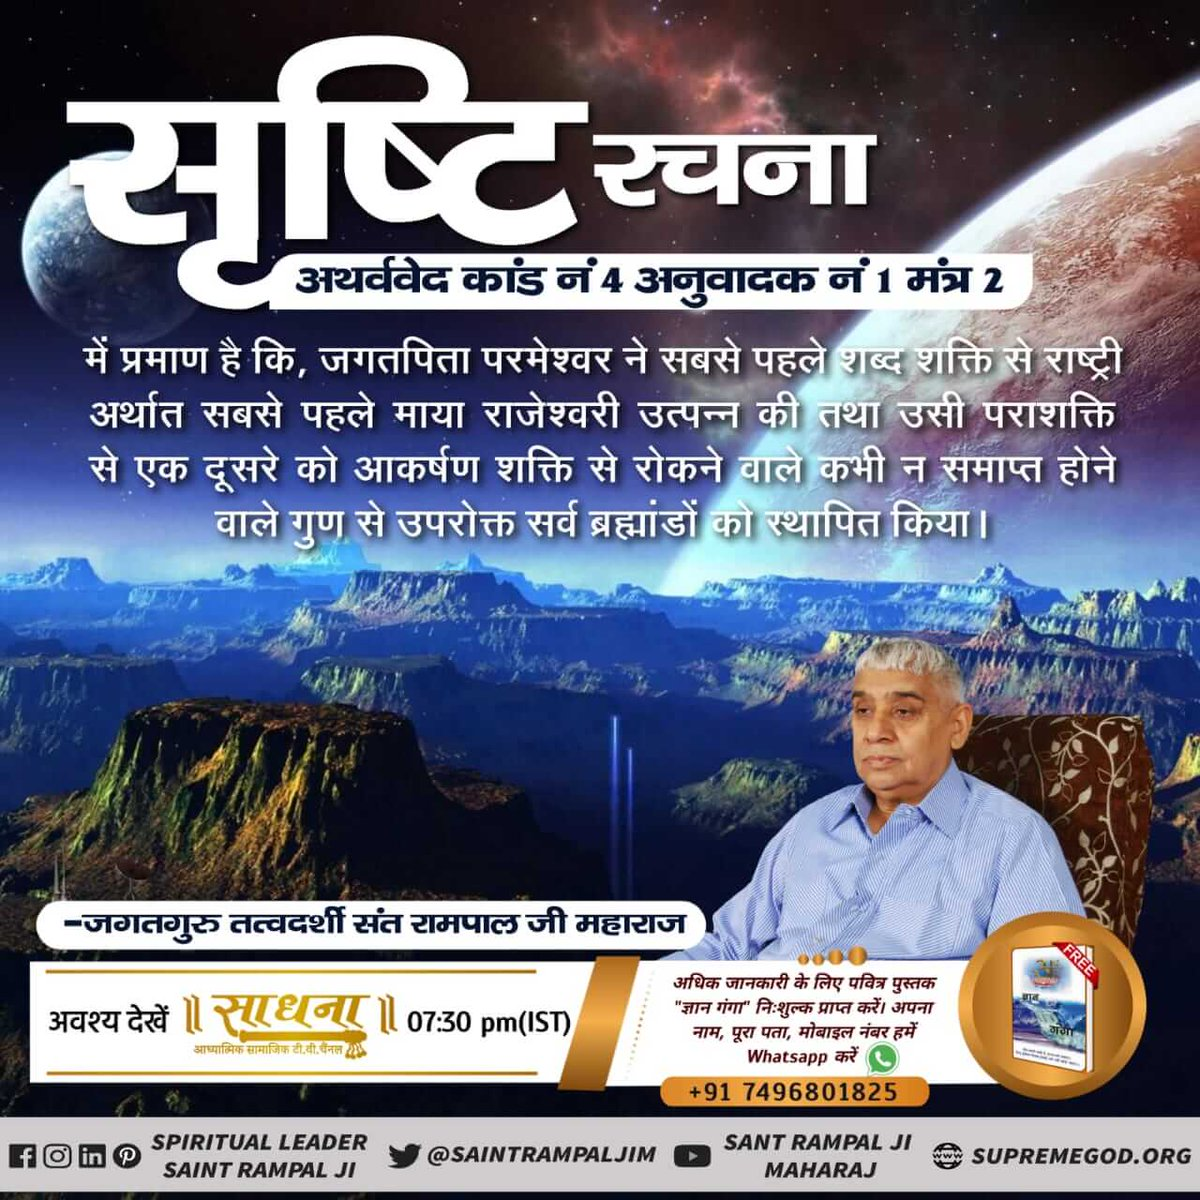 #GodMorningThursday #thursdaymorning Human life has been given to us to do worship of Supreme God Kabir Sahib. The sole aim of this human life is to achieve liberation.  Watch Sadhna channel 7, 30 p m @SaintRampalJiM